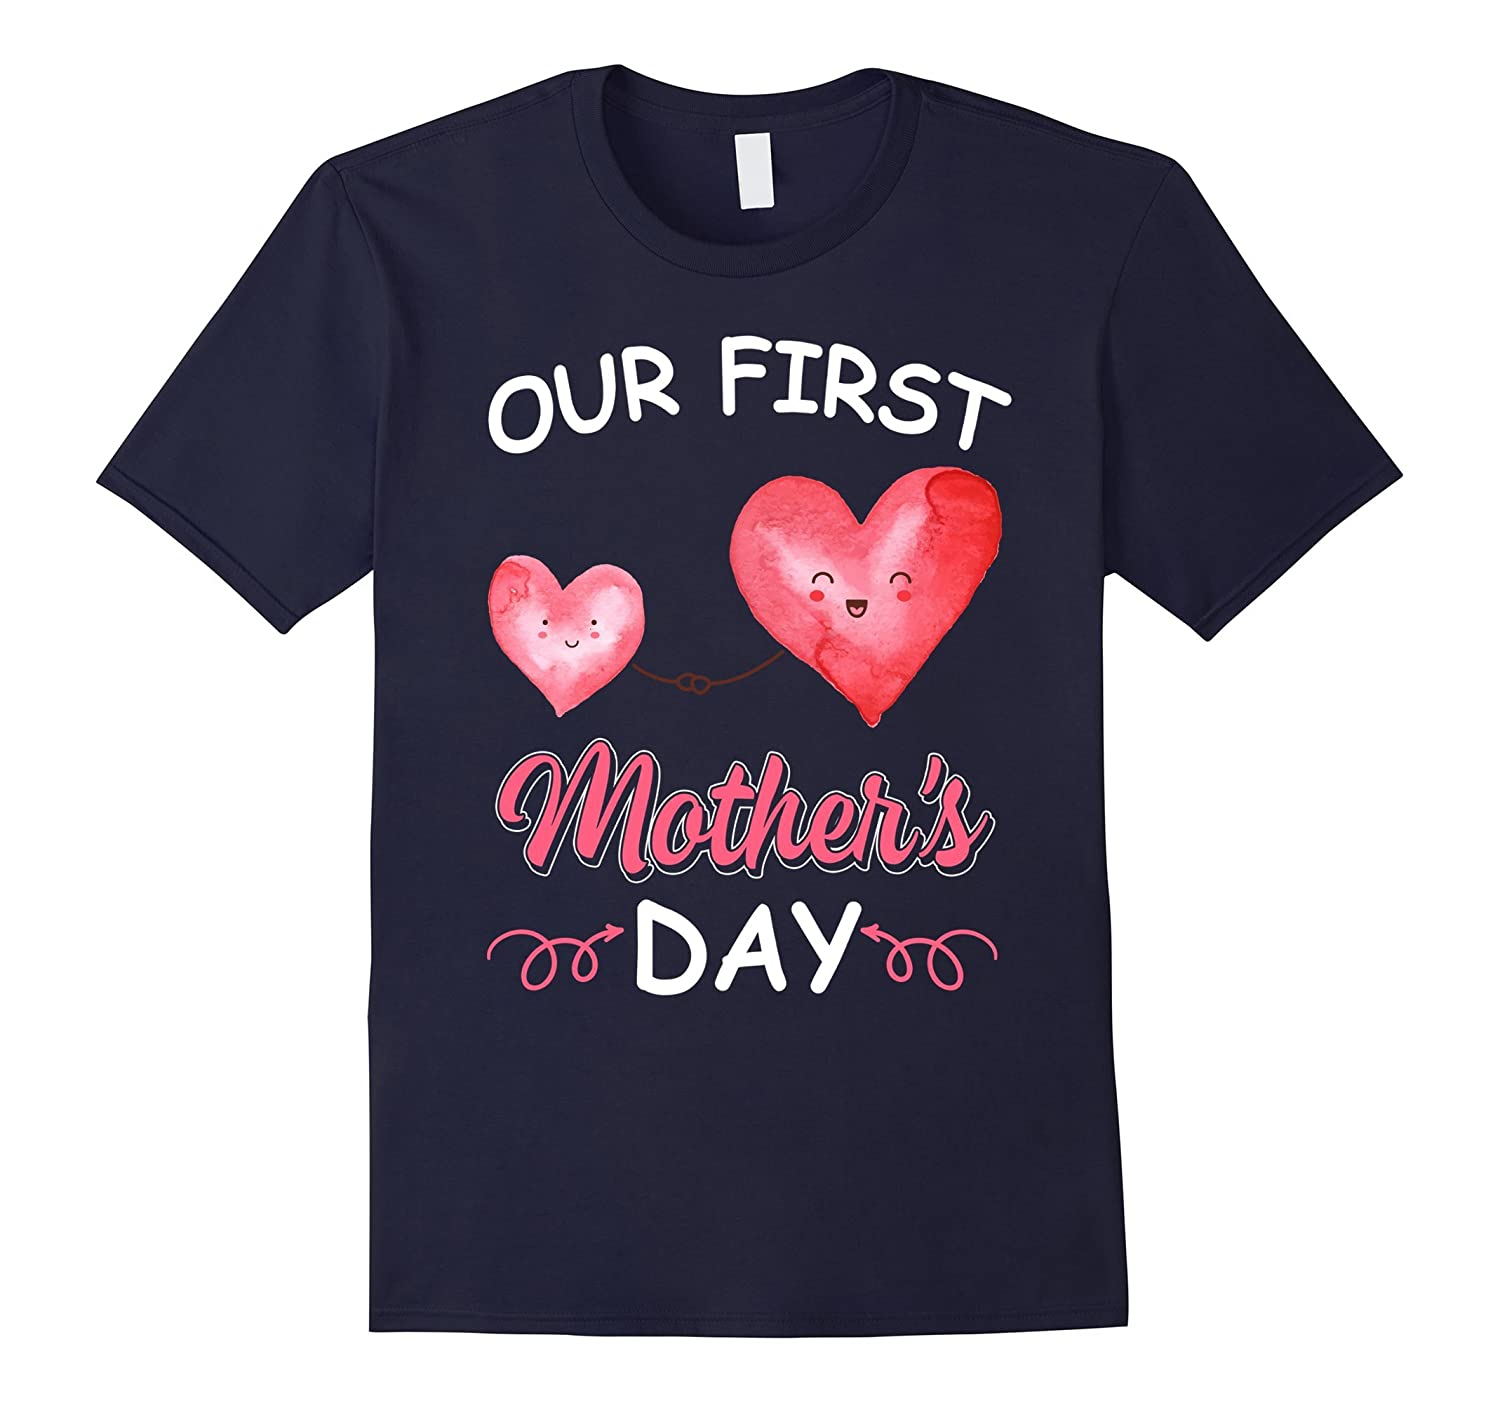 Our first Mothers Day Funny Family Tshirt for MotherWomen-CD